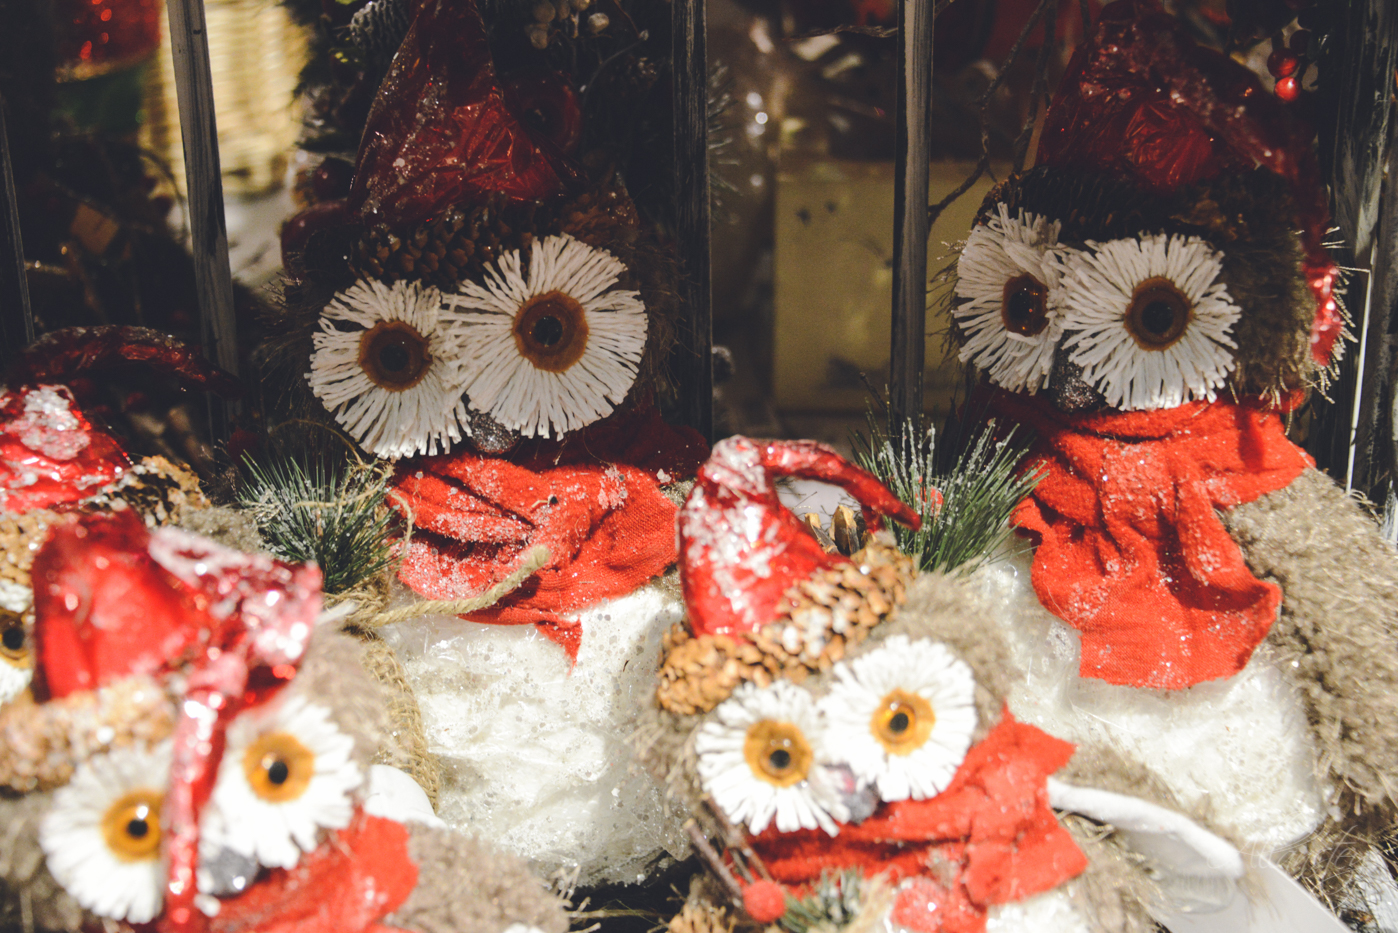 owls Christmas winter holiday decorations